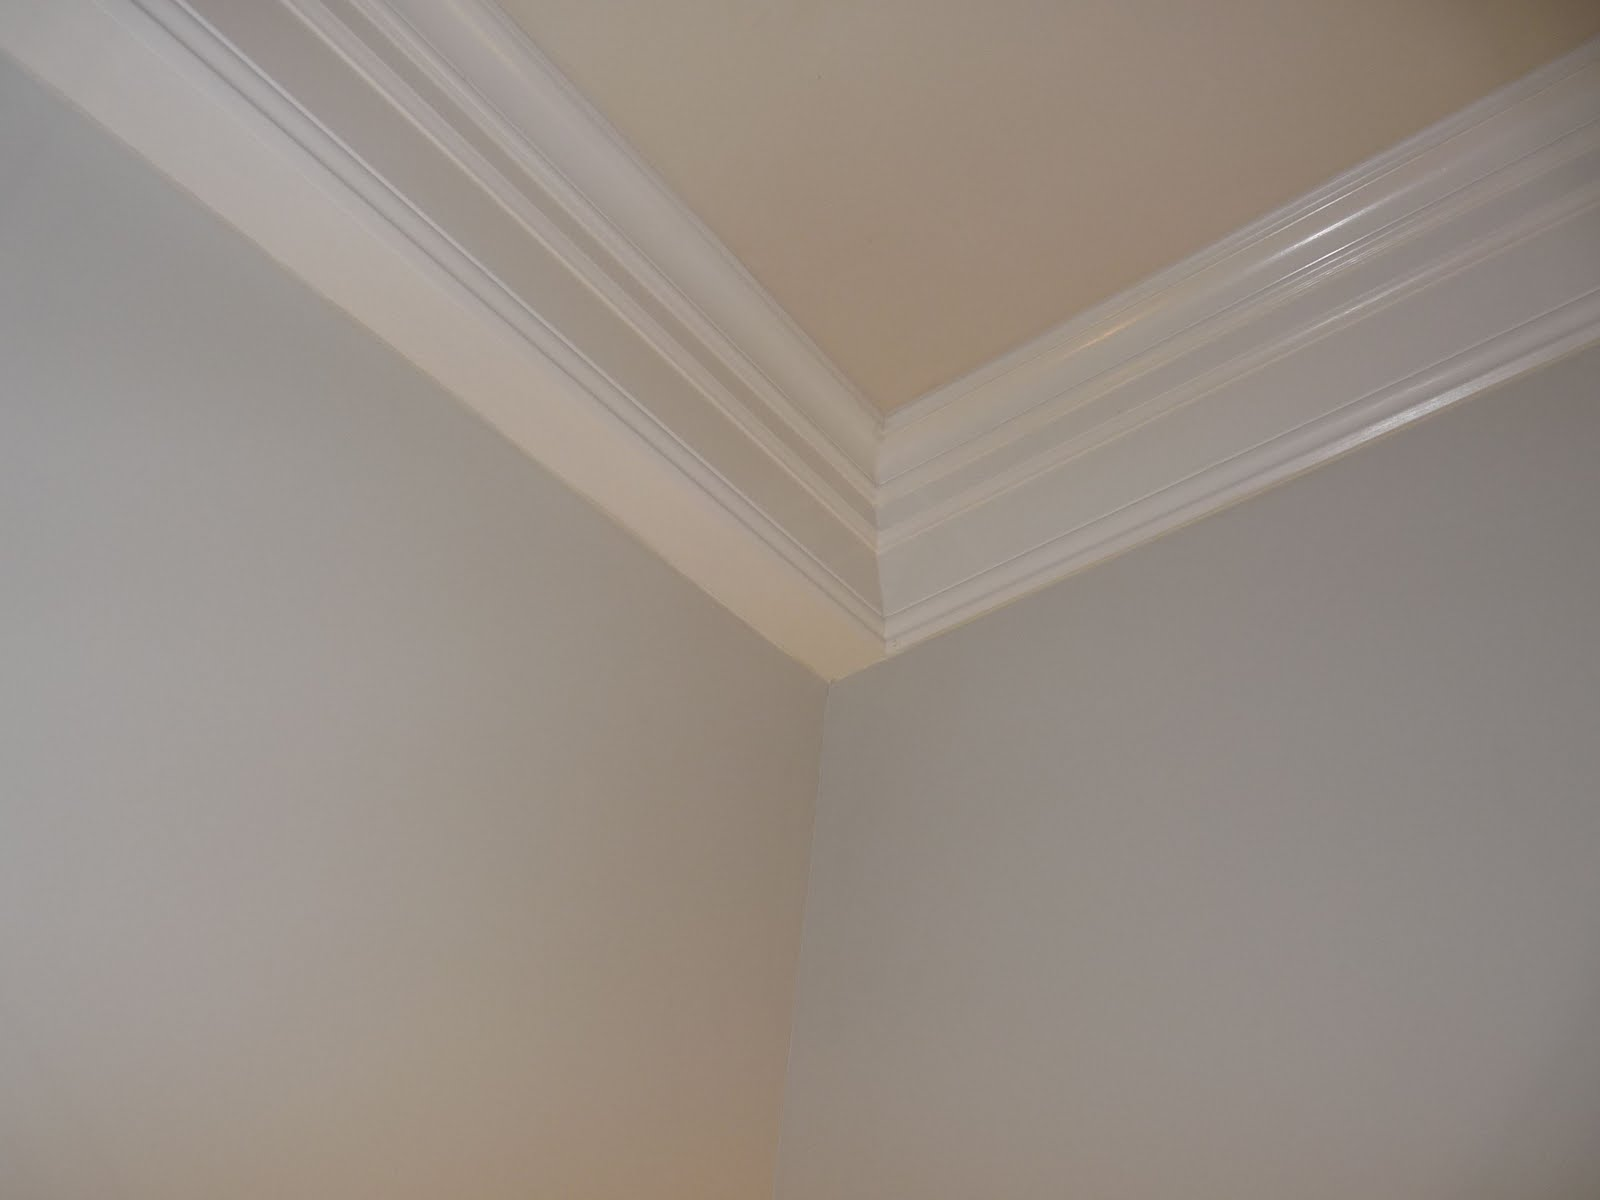 Sloped Ceiling Crown Molding Wallpaper PicsWallpapercom 1600x1200